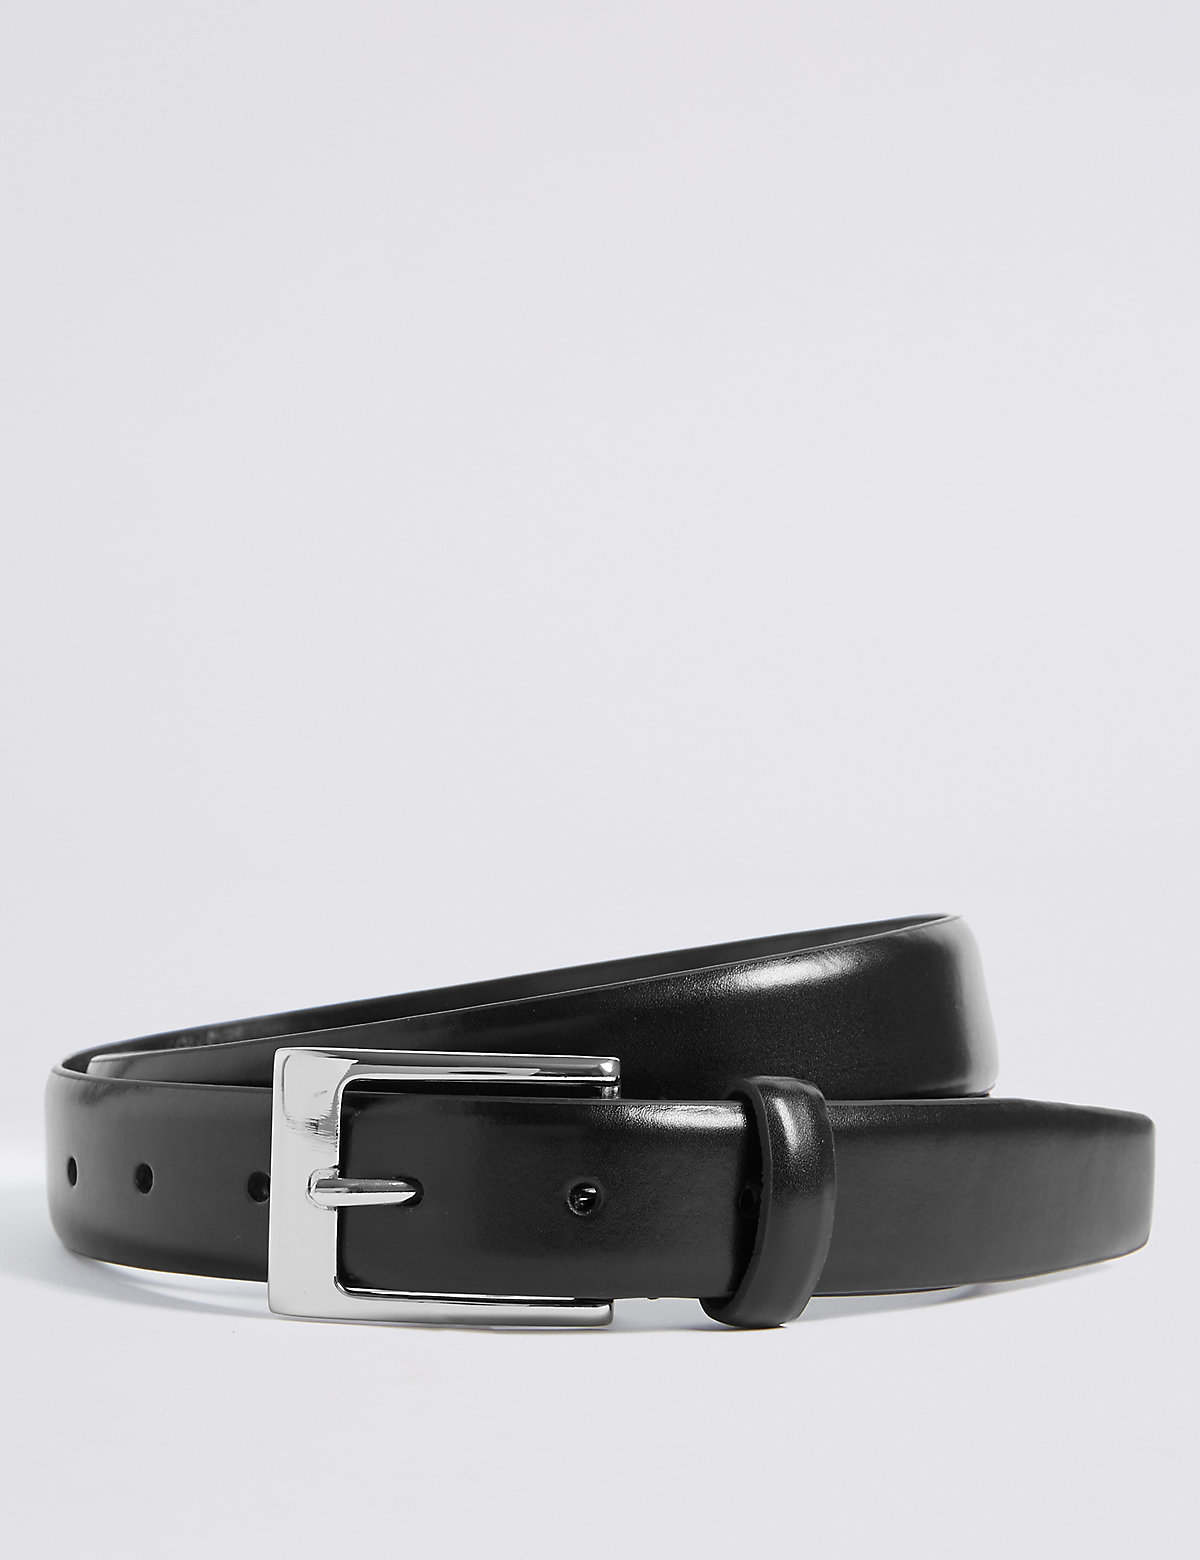 Marks & Spencer Black Rectangular Buckle Smart Belt